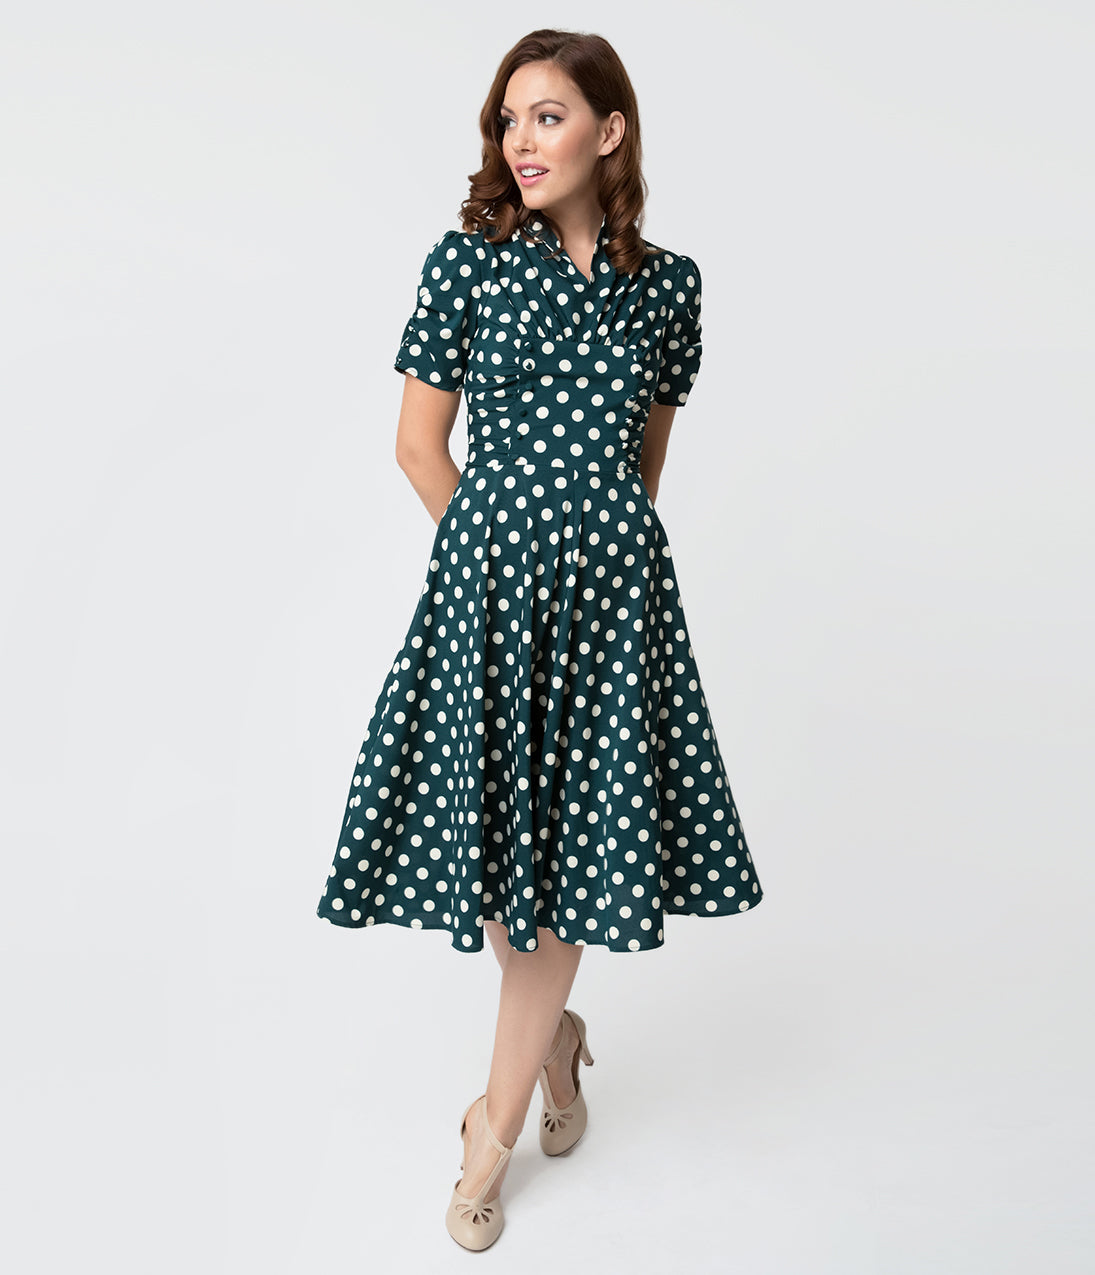 1940s Dresses | 40s Dress, Swing Dress Unique Vintage 1940S Style Emerald Green  White Dot Camilla Midi Dress $66.00 AT vintagedancer.com